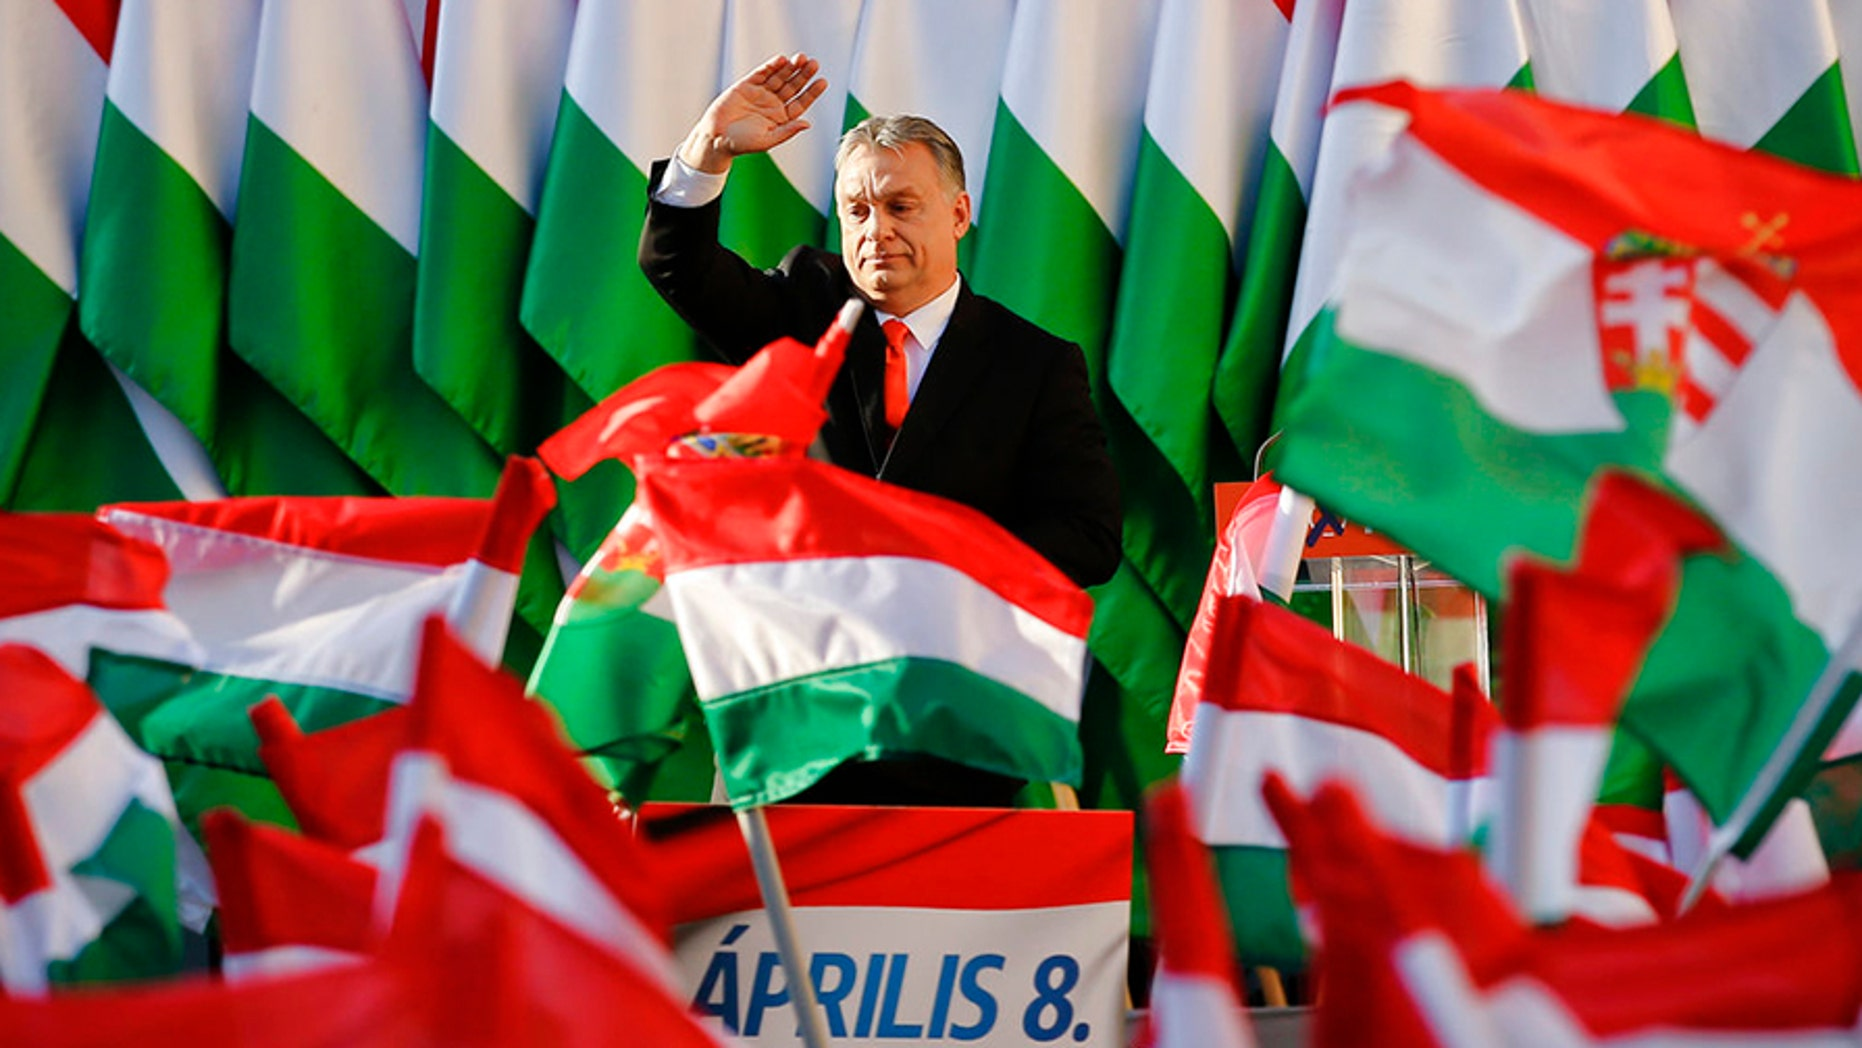 Hungarian Prime Minister Viktor Orban's Fidesz Party won a supermajority in elections in April.